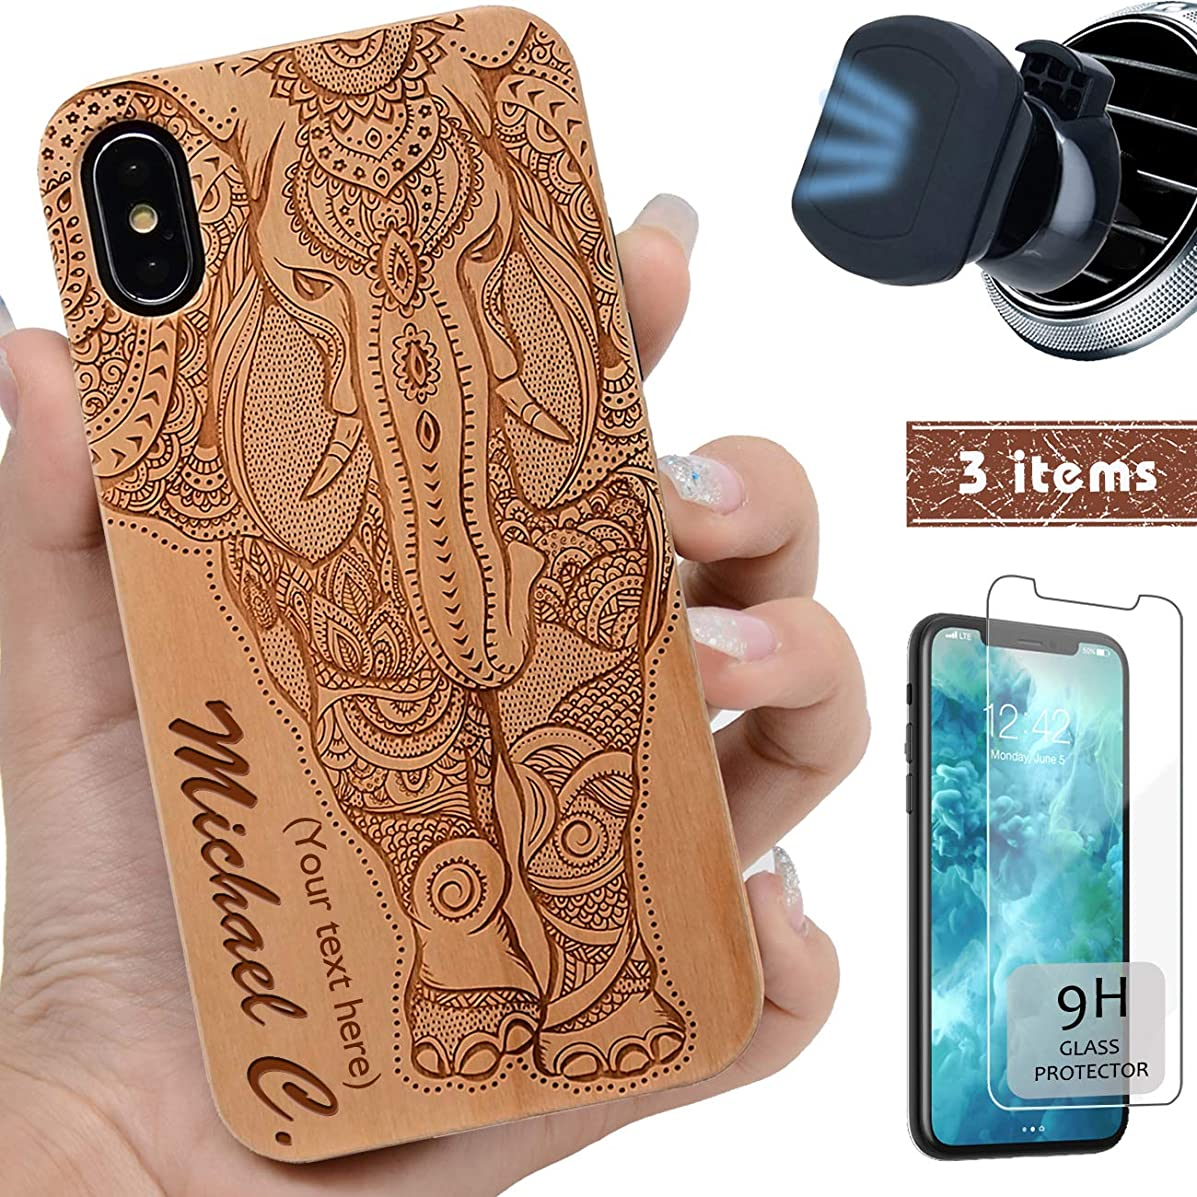 iProductsUS Wood Phone Case Compatible with iPhone XR,Magnetic Mount and Screen Protector-Engrave Elephant and Name Cases,Compatible Wireless Charger,Built-in Metal Plate, TPU Protective Cover (6.1